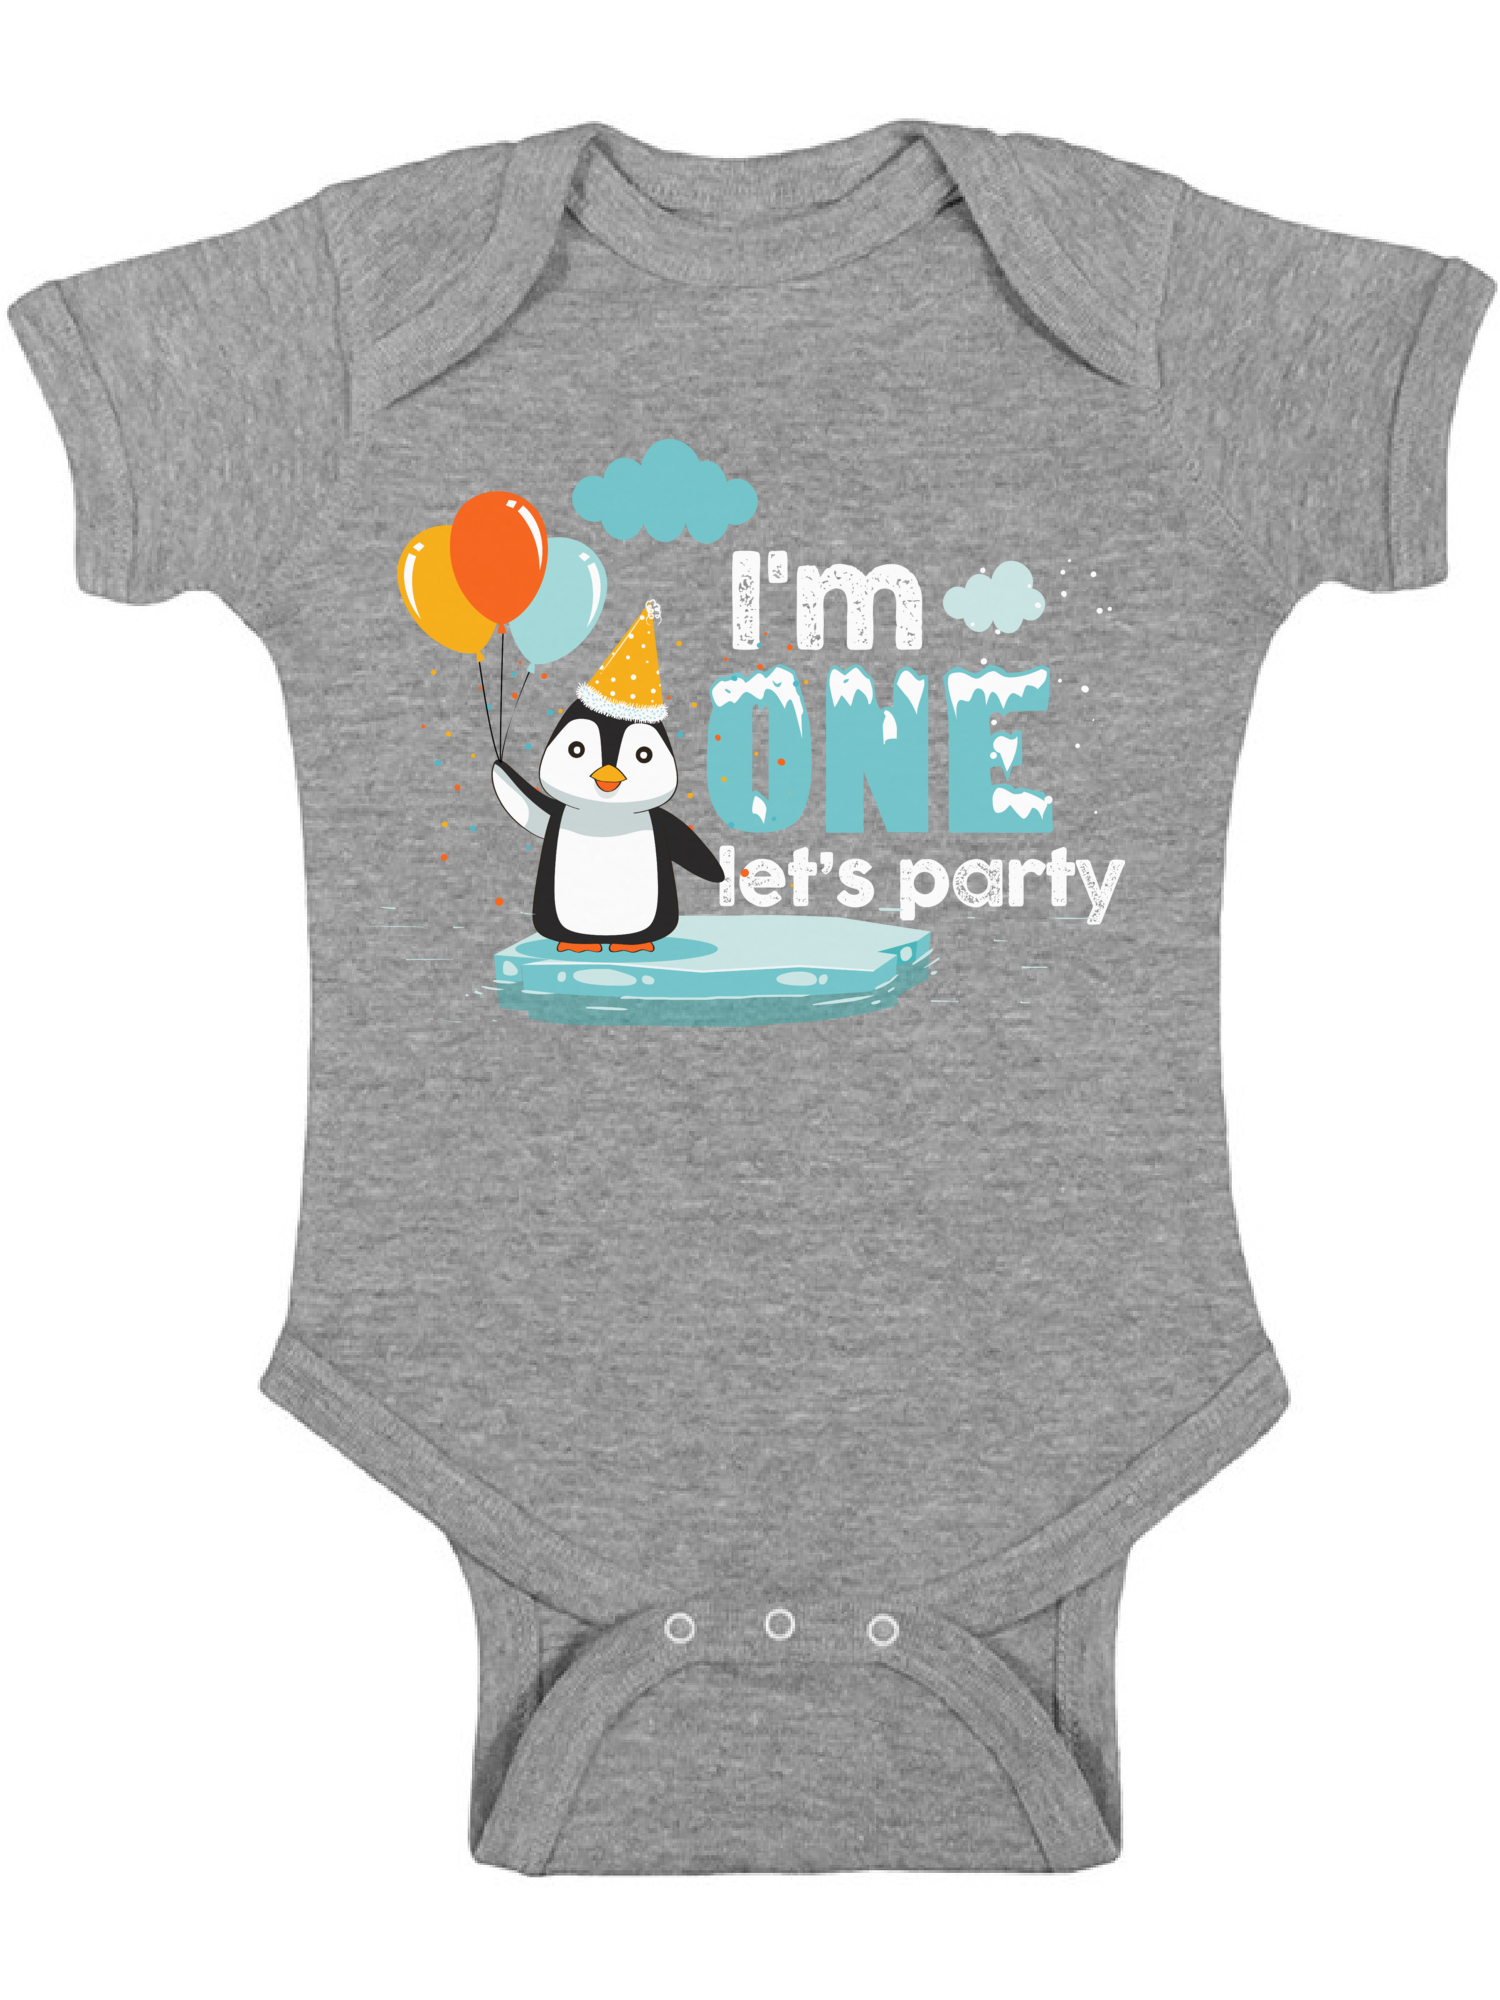 First Birthday Baby Birthday Baby One-Piece Baby Onepiece Baby Shower Baby Gift Penguin Chillin Funny Baby Bodysuit